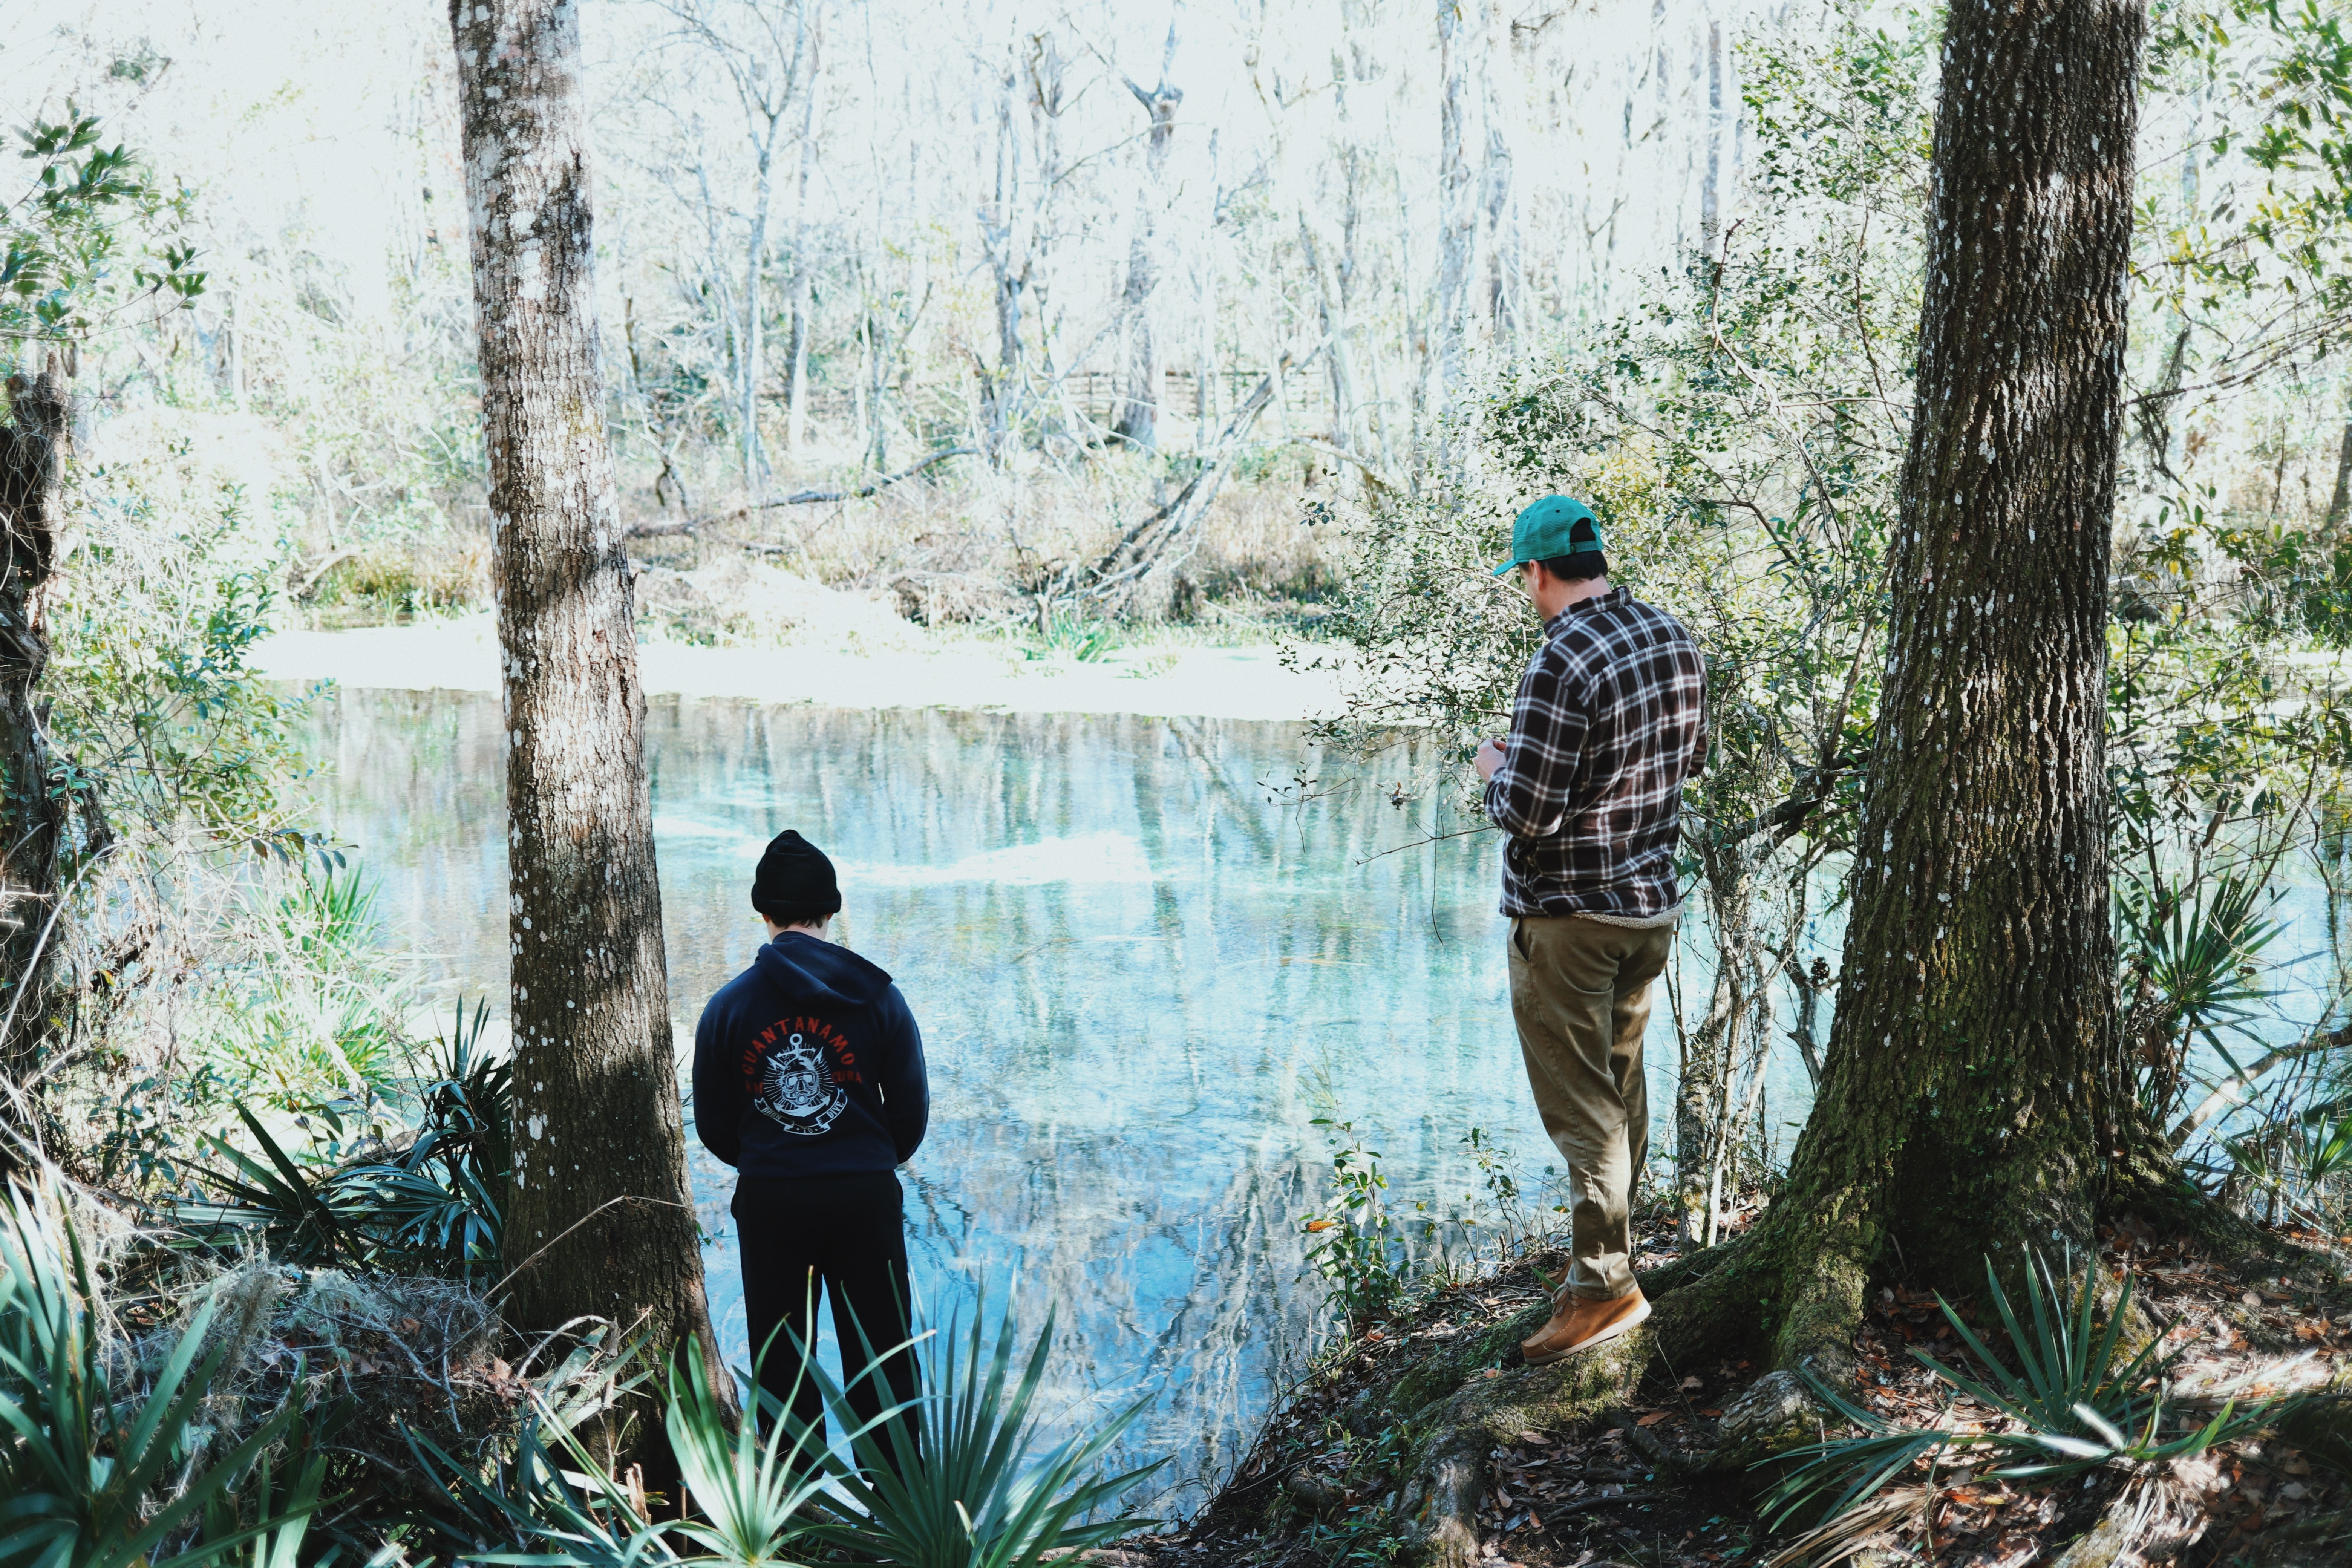 Two men fishing on the banks of a clear river.